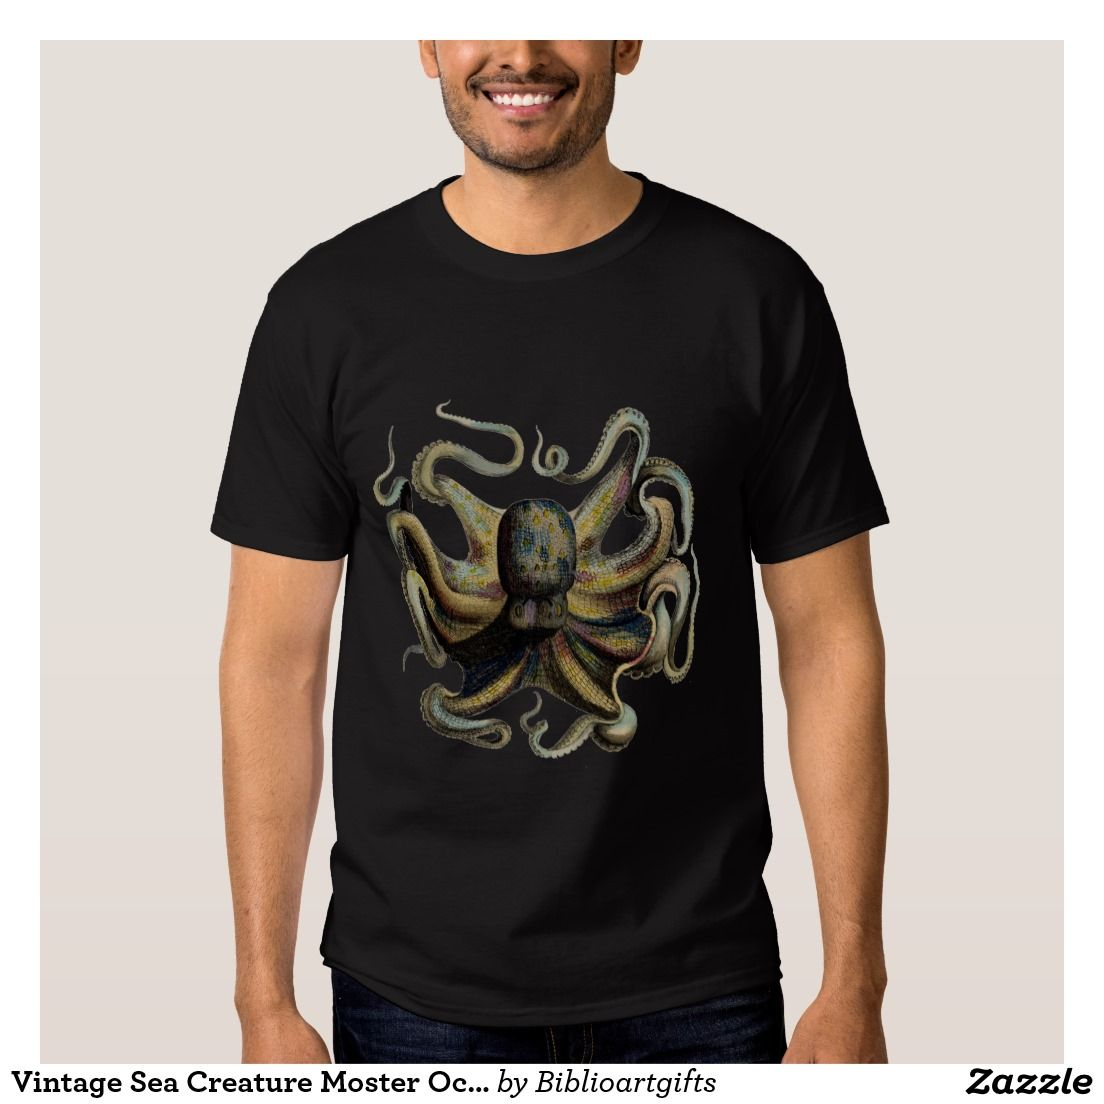 Vintage Sea Creature Moster Octopus Graphic T-shirt